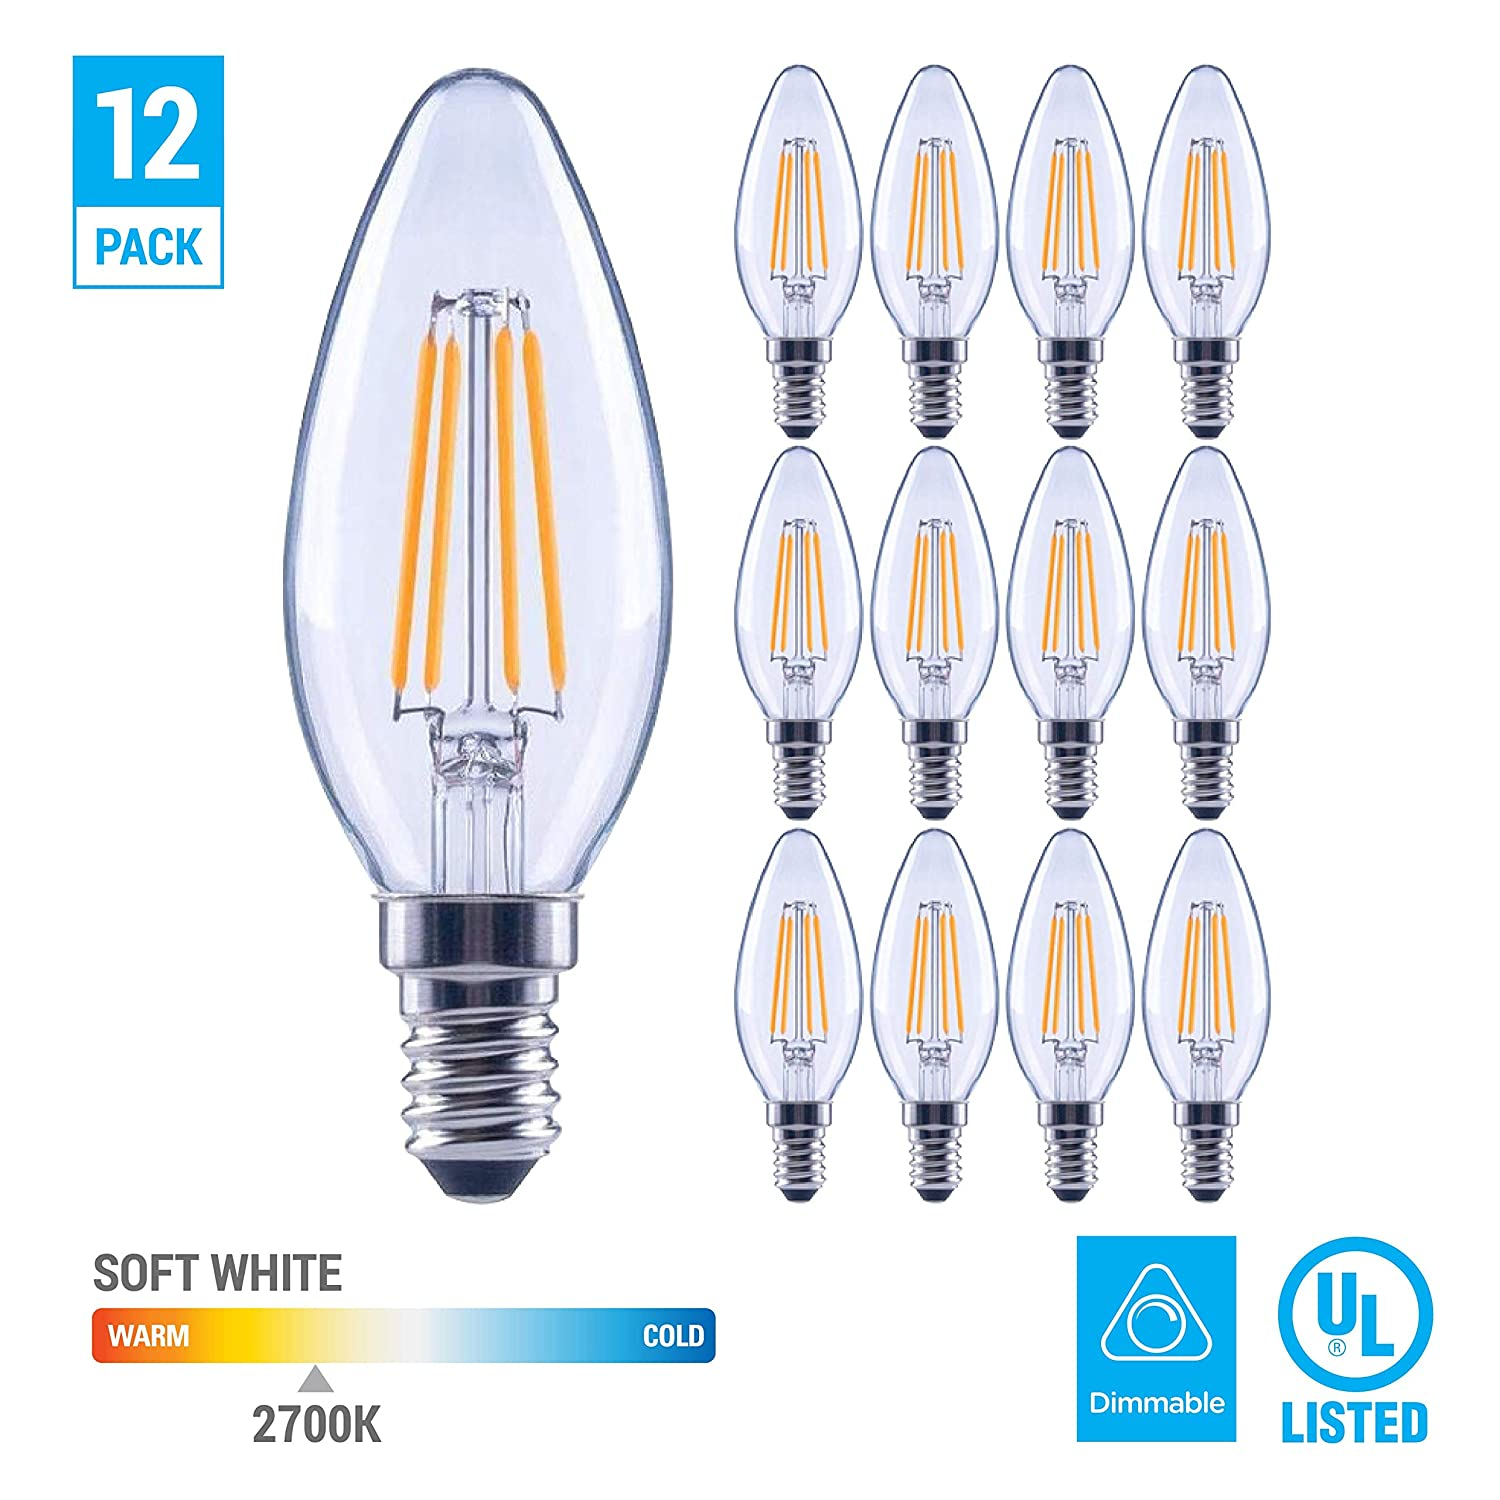 (12 Pack) 60-Watt Equivalent LED E12 Candelabra Base B11 Dimmable Clear Filament Vintage Style Light Bulb 2700K Warm White Decorative 60W LED Chandelier Ceiling Fan Bulbs. 81hbLolnYLL